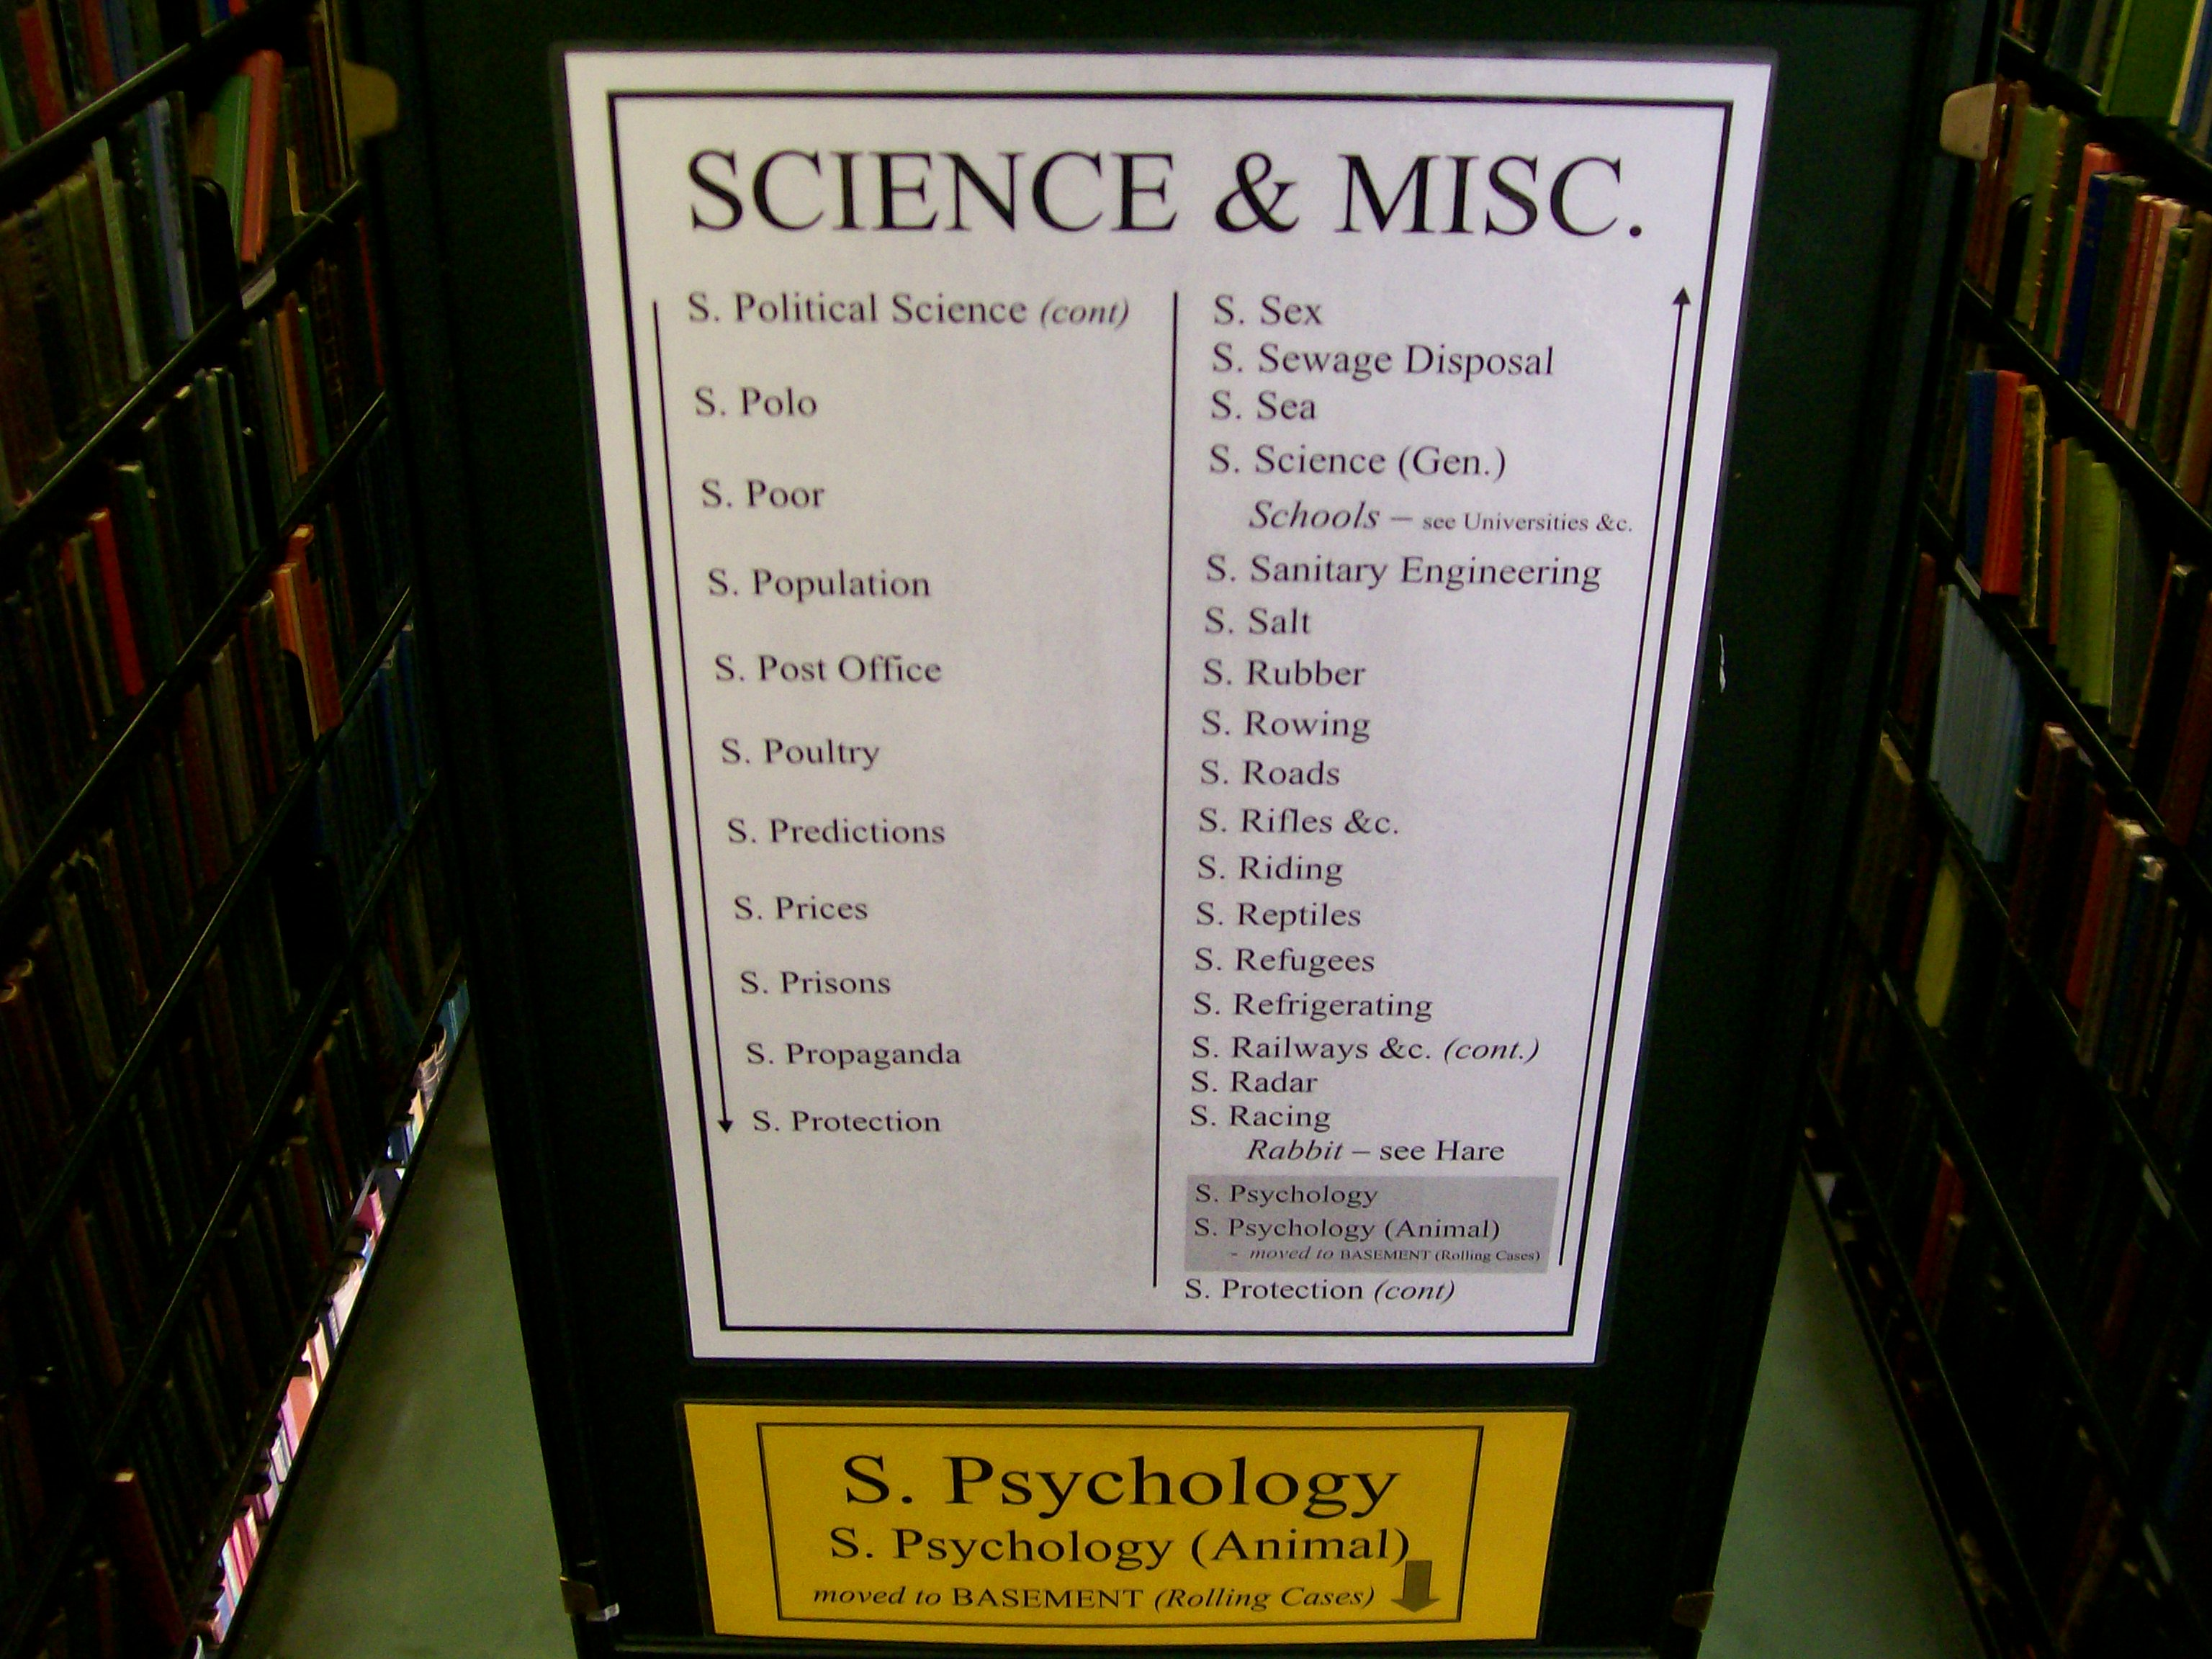 Science & Misc subject headings